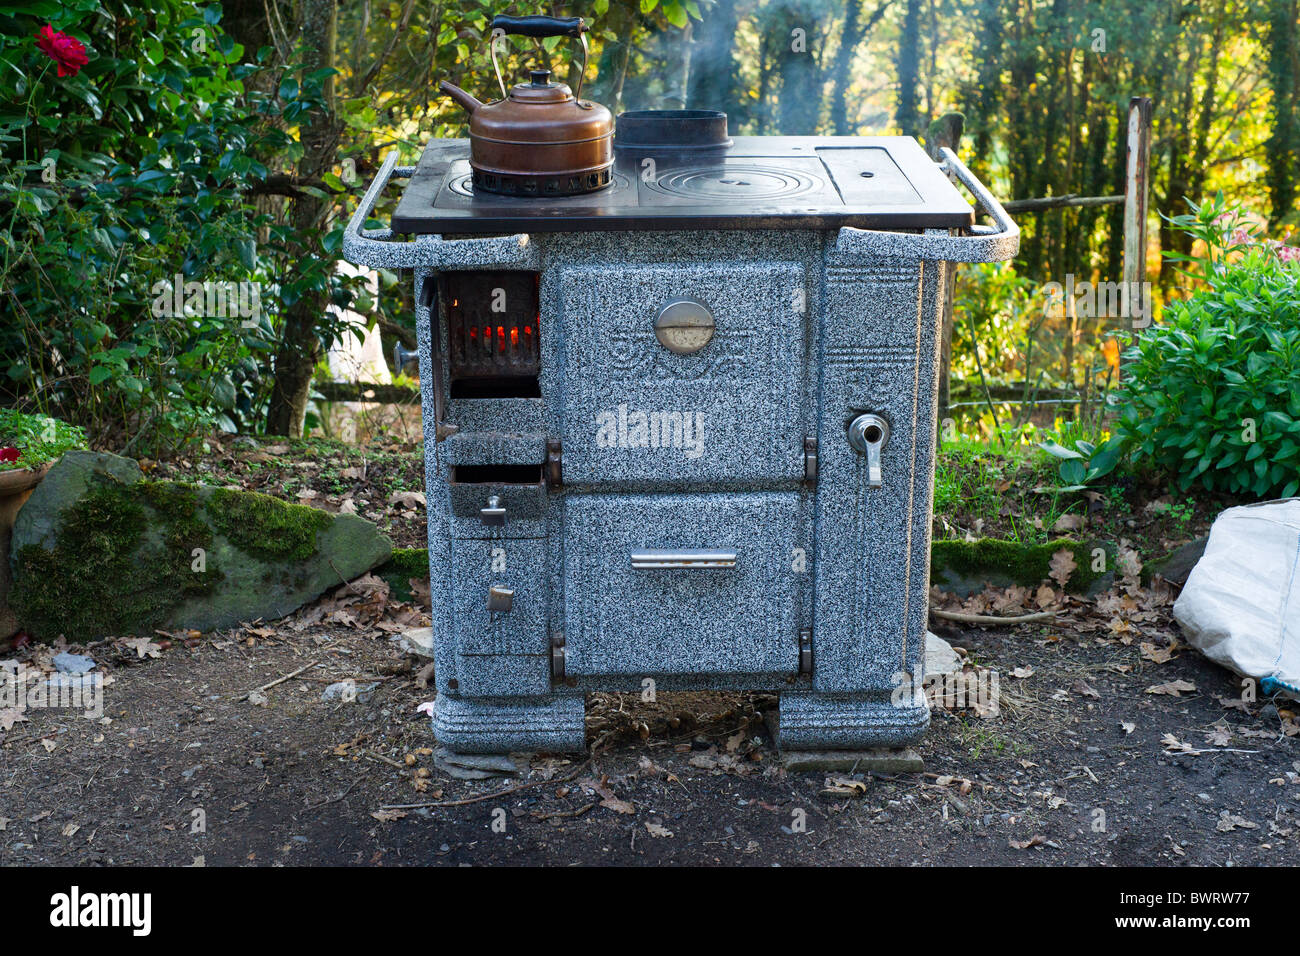 Copper Kettle Stove Stock Photos & Copper Kettle Stove Stock Images ...